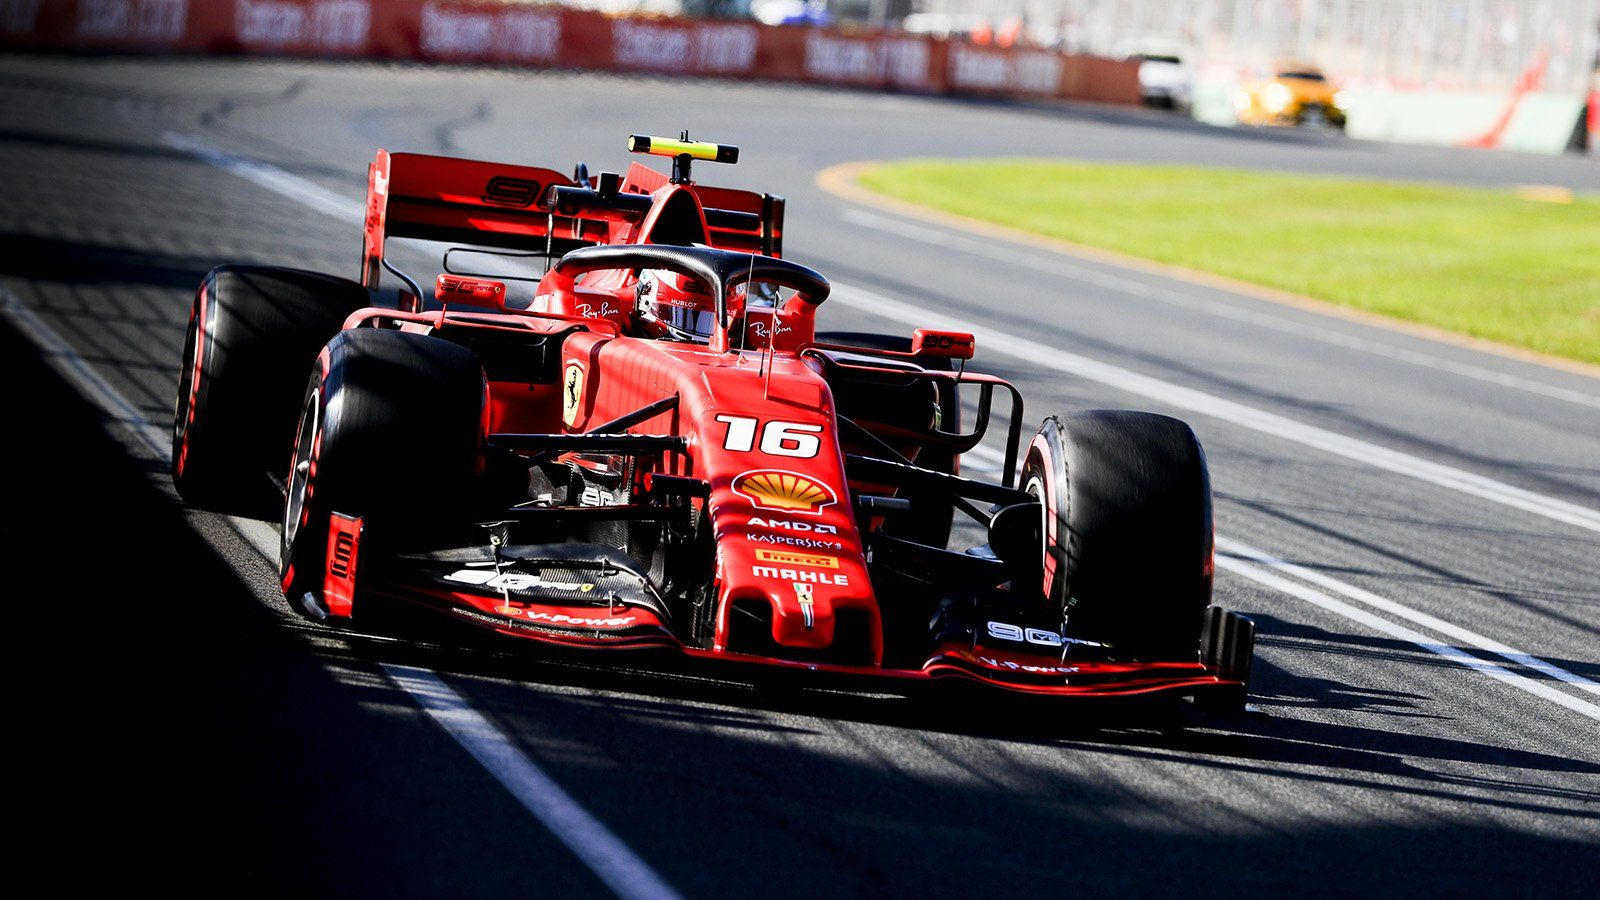 Charles Leclerc Wallpapers Top Free Charles Leclerc Backgrounds Wallpaperaccess